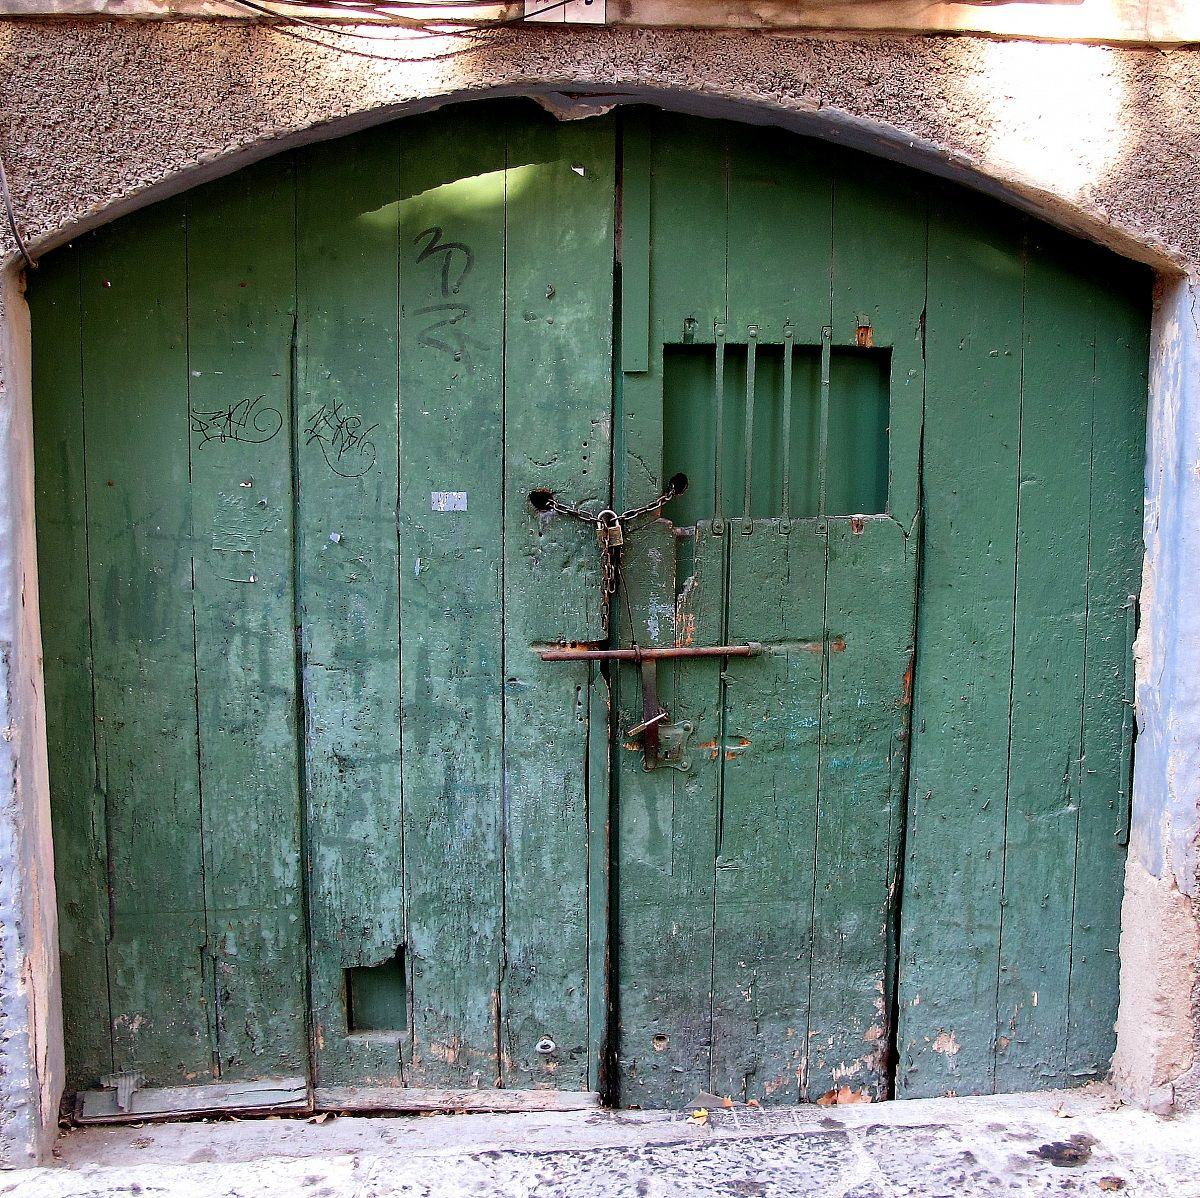 The Green Gate...